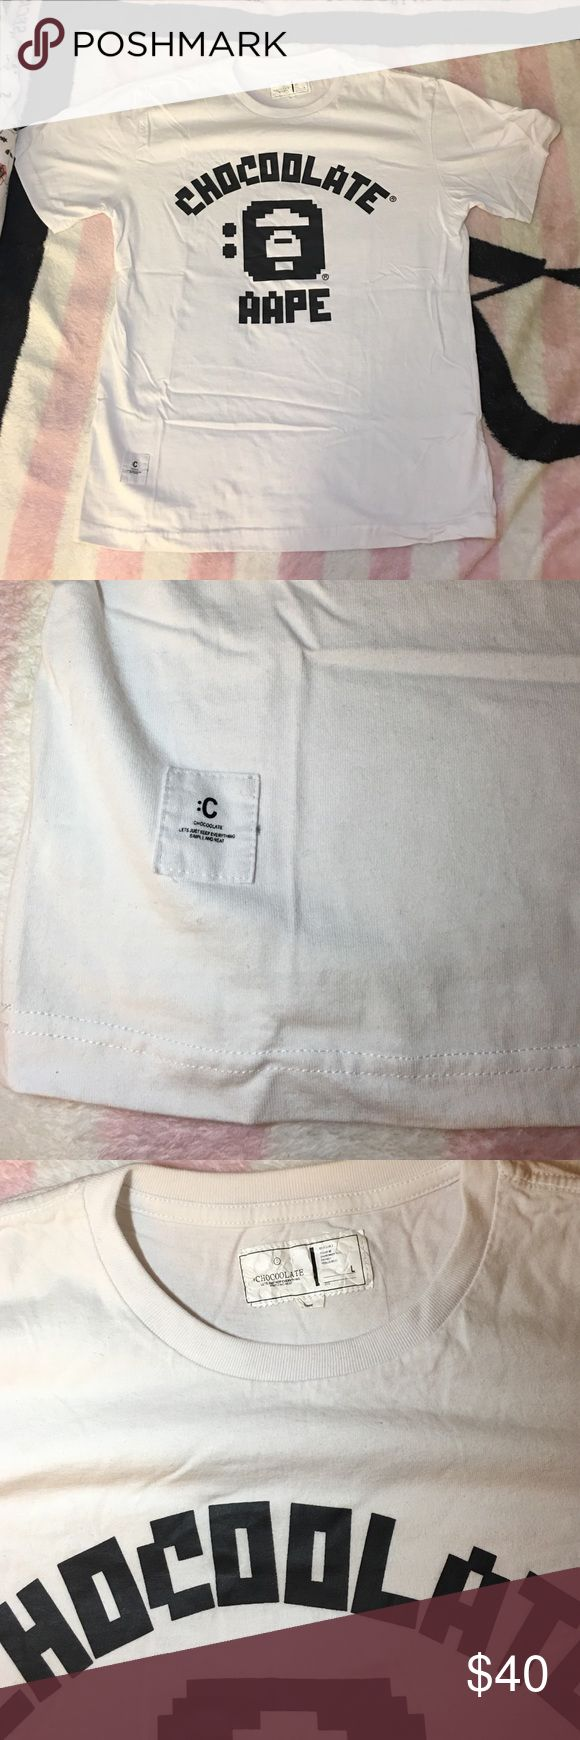 AAPE X CHOCOLATE HK WHITE T SHIRT SIZE L AAPE X CHOCOLATE HK WHITE T SHIRT SIZE L. Don't need it anymore since it's from my ex boyfriend. He wears as a Large size but I usually wear it as a oversized top. Don't know authenticity since it's his stuff but I uploaded more detail pics for you. It looks real to me. The quality & the touch. Anyways, don't need his stuff anymore. Pls take it home. Many life left. aape Shirts Tees - Short Sleeve